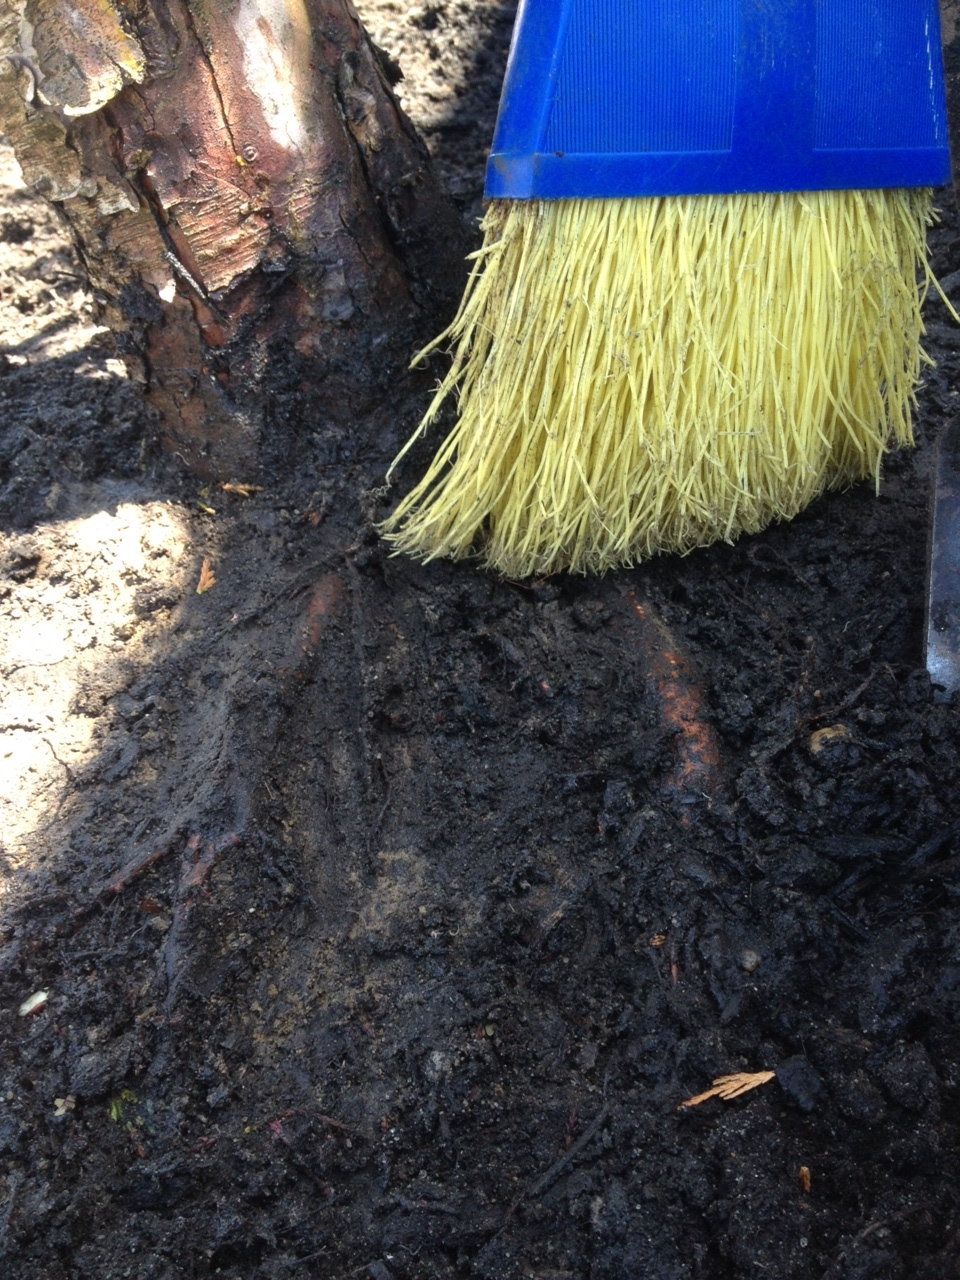 Here Gregg is clearing mulch off of the crown and roots of an Alaskan Cedar